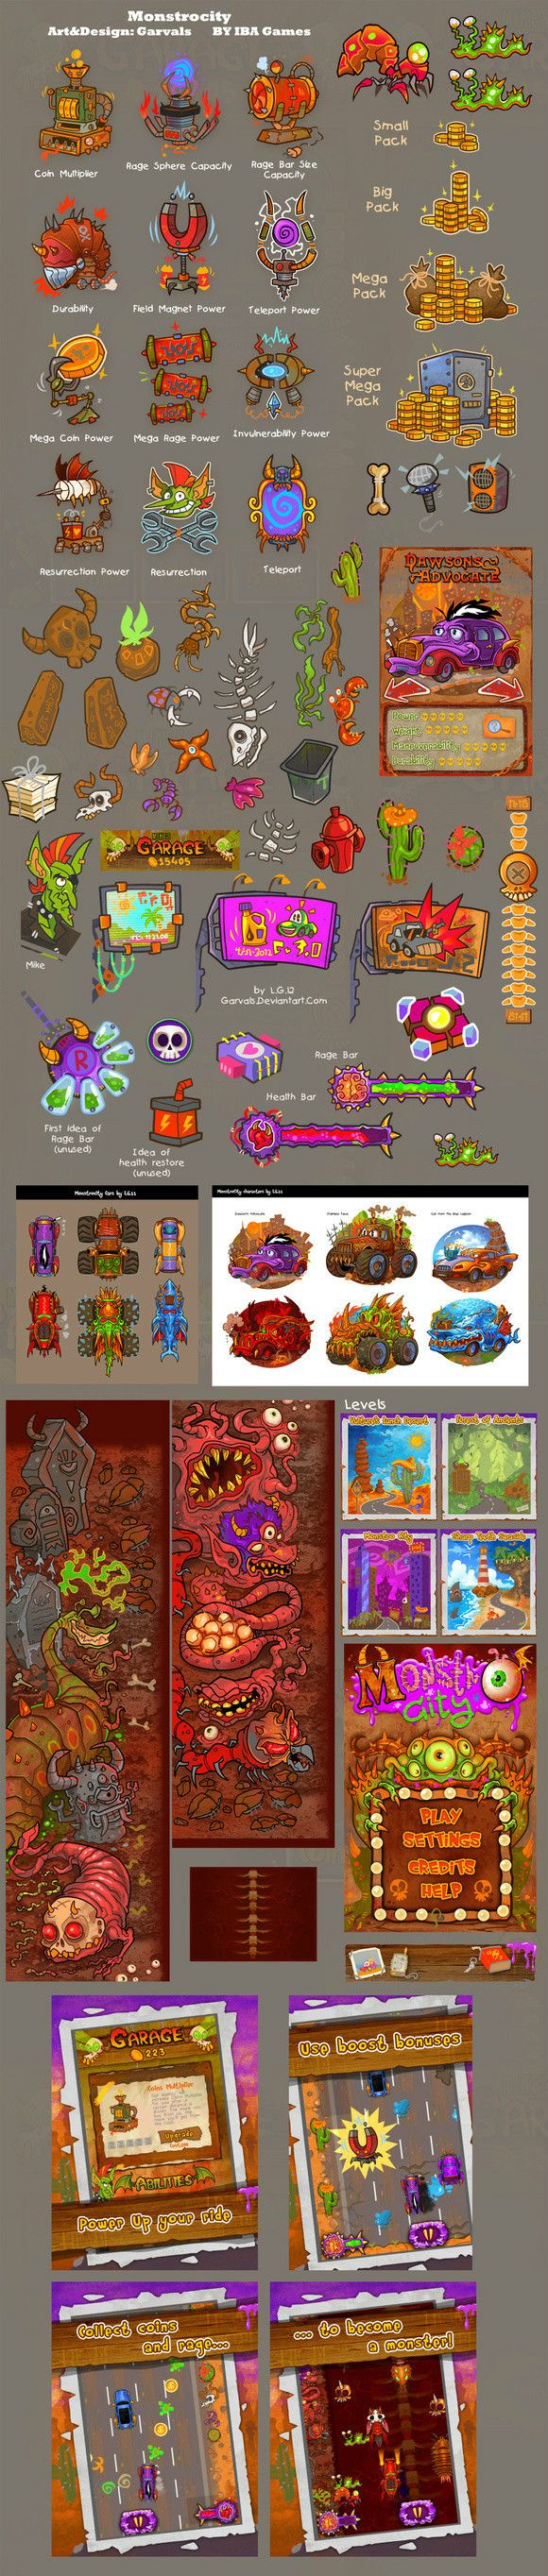 A very interesting game interface   GAMEUI-game design circles gathering   Game UI   Game Interface   Game Icons   games site   Game Group   ...